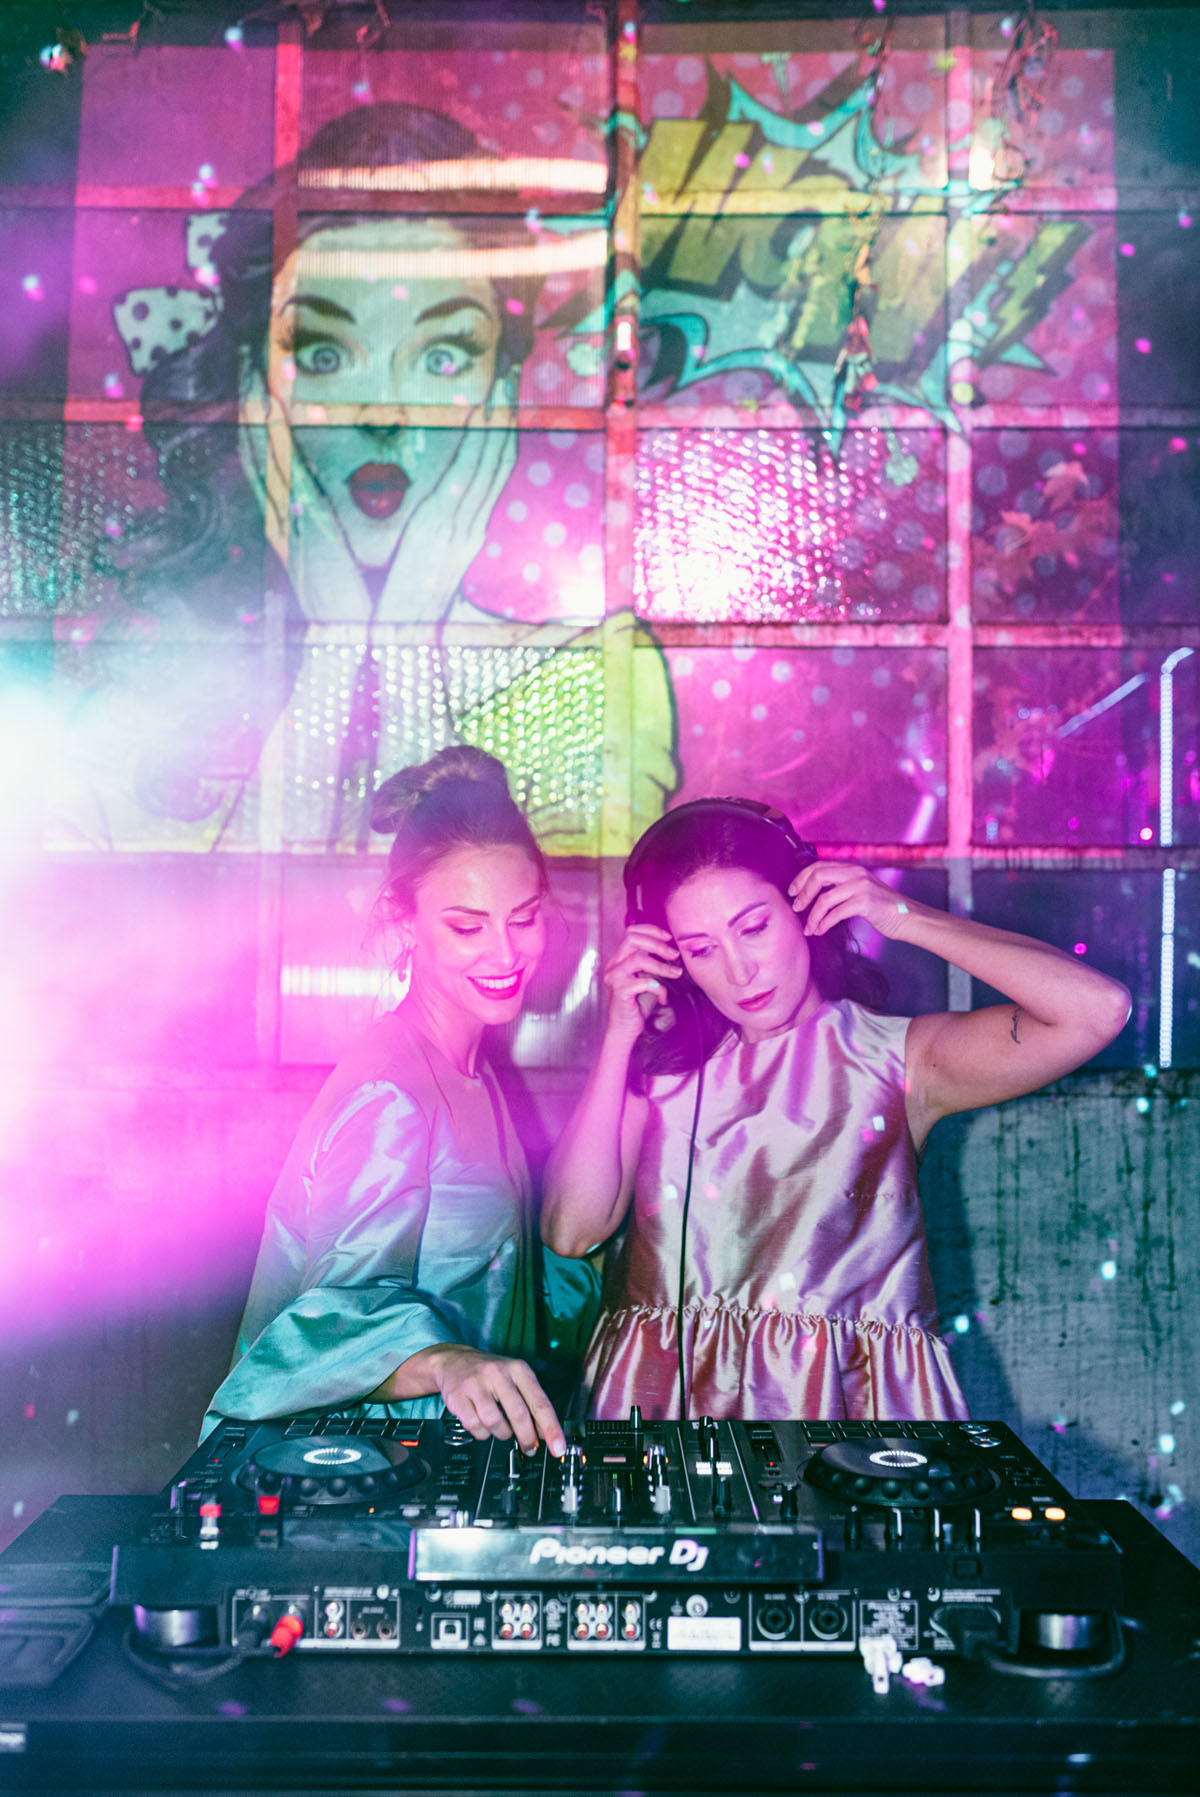 The brides as DJs - so fun and cool